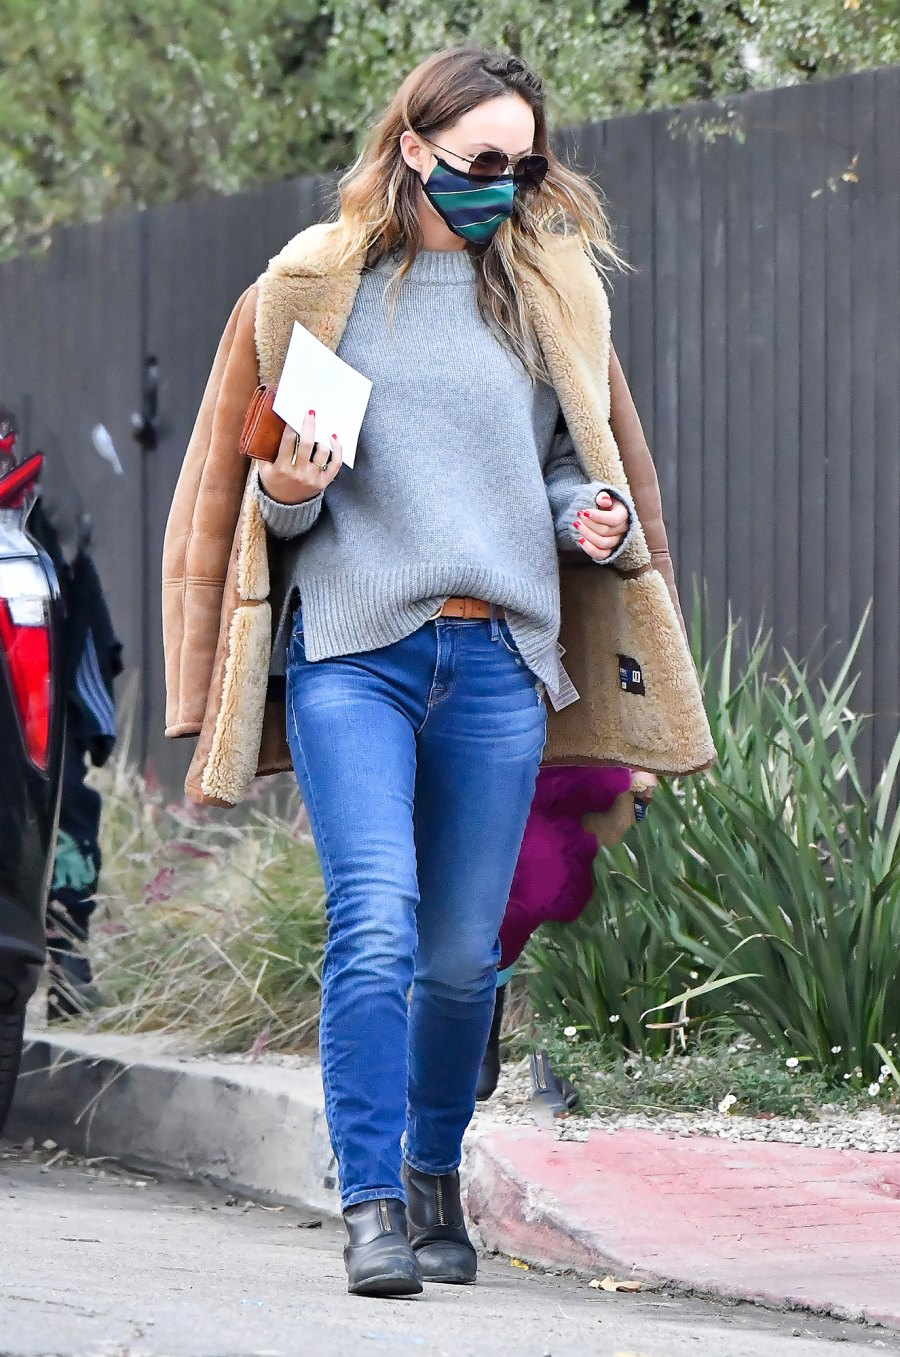 Olivia Wilde Ditches Her Engagement Ring After Split From Jason Sudeikis